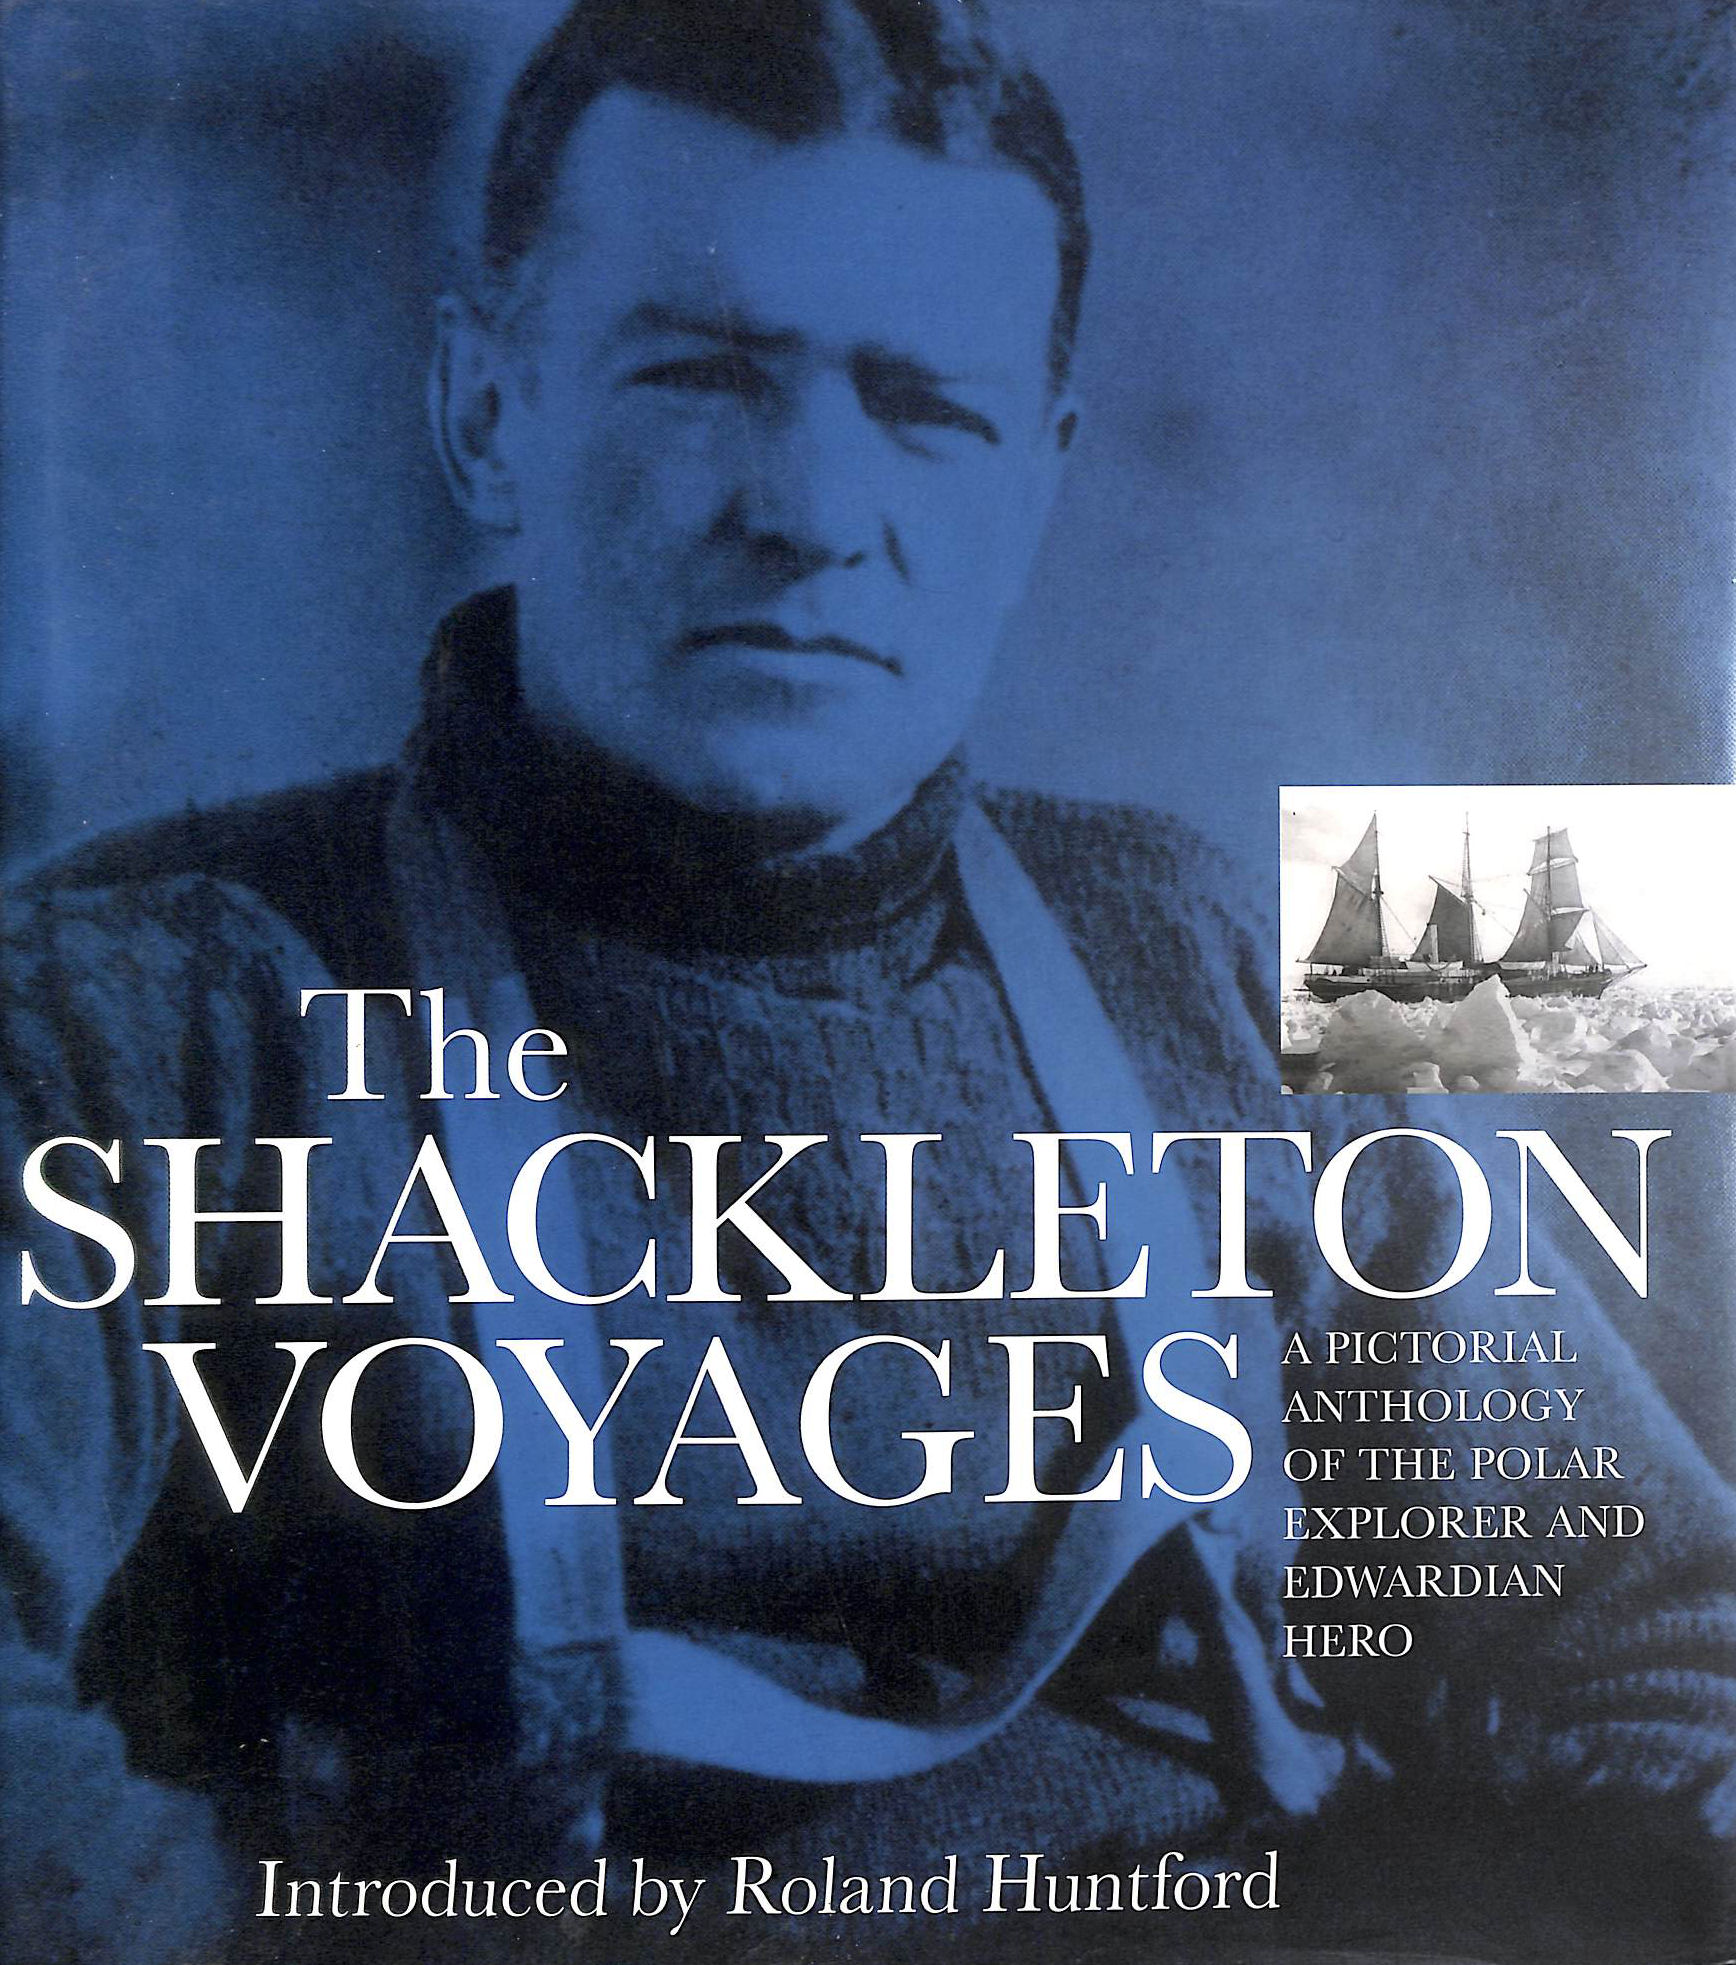 Image for The Shackleton Voyages: A Pictorial Anthology Of The Polar Explorer And Edwardian Hero